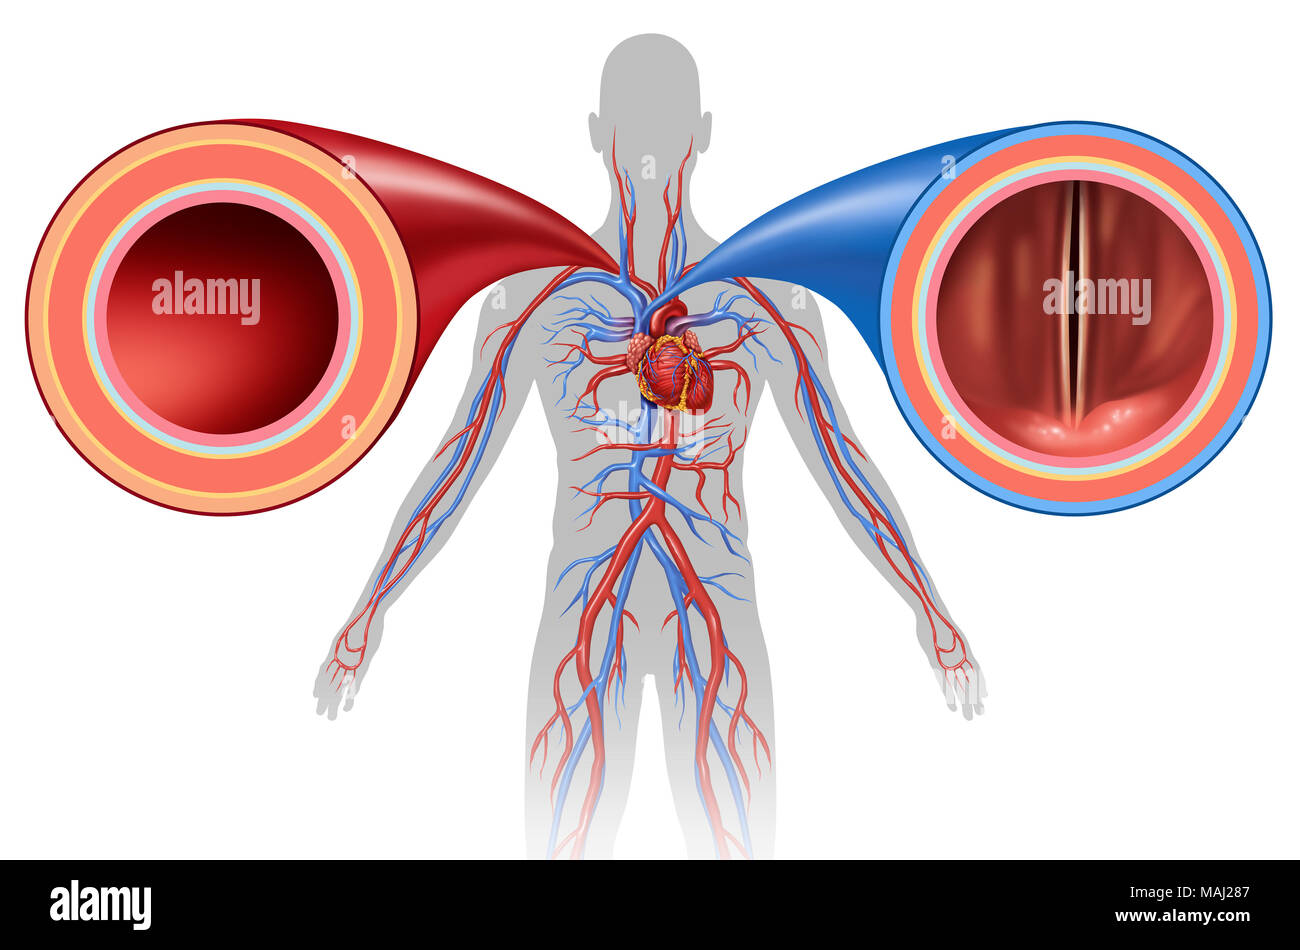 Artery And Vein Structure As A Human Circulation Concept With Blood